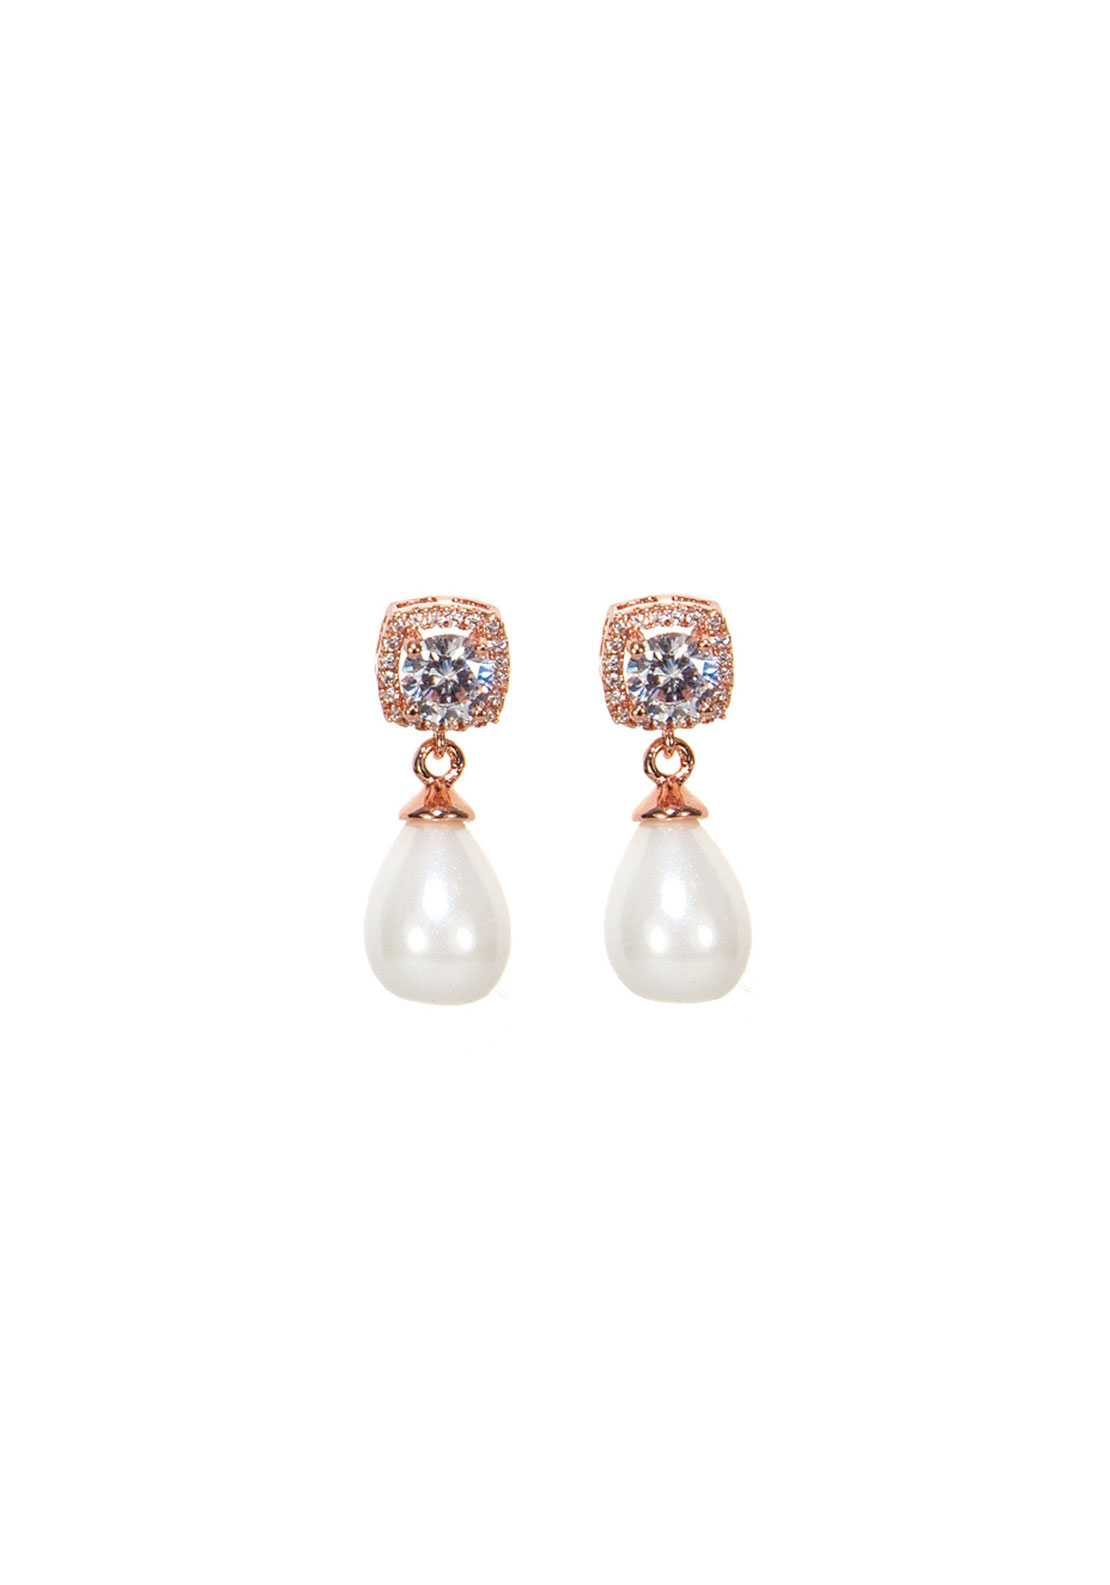 Absolute Jewellery Pearl Drop Earrings